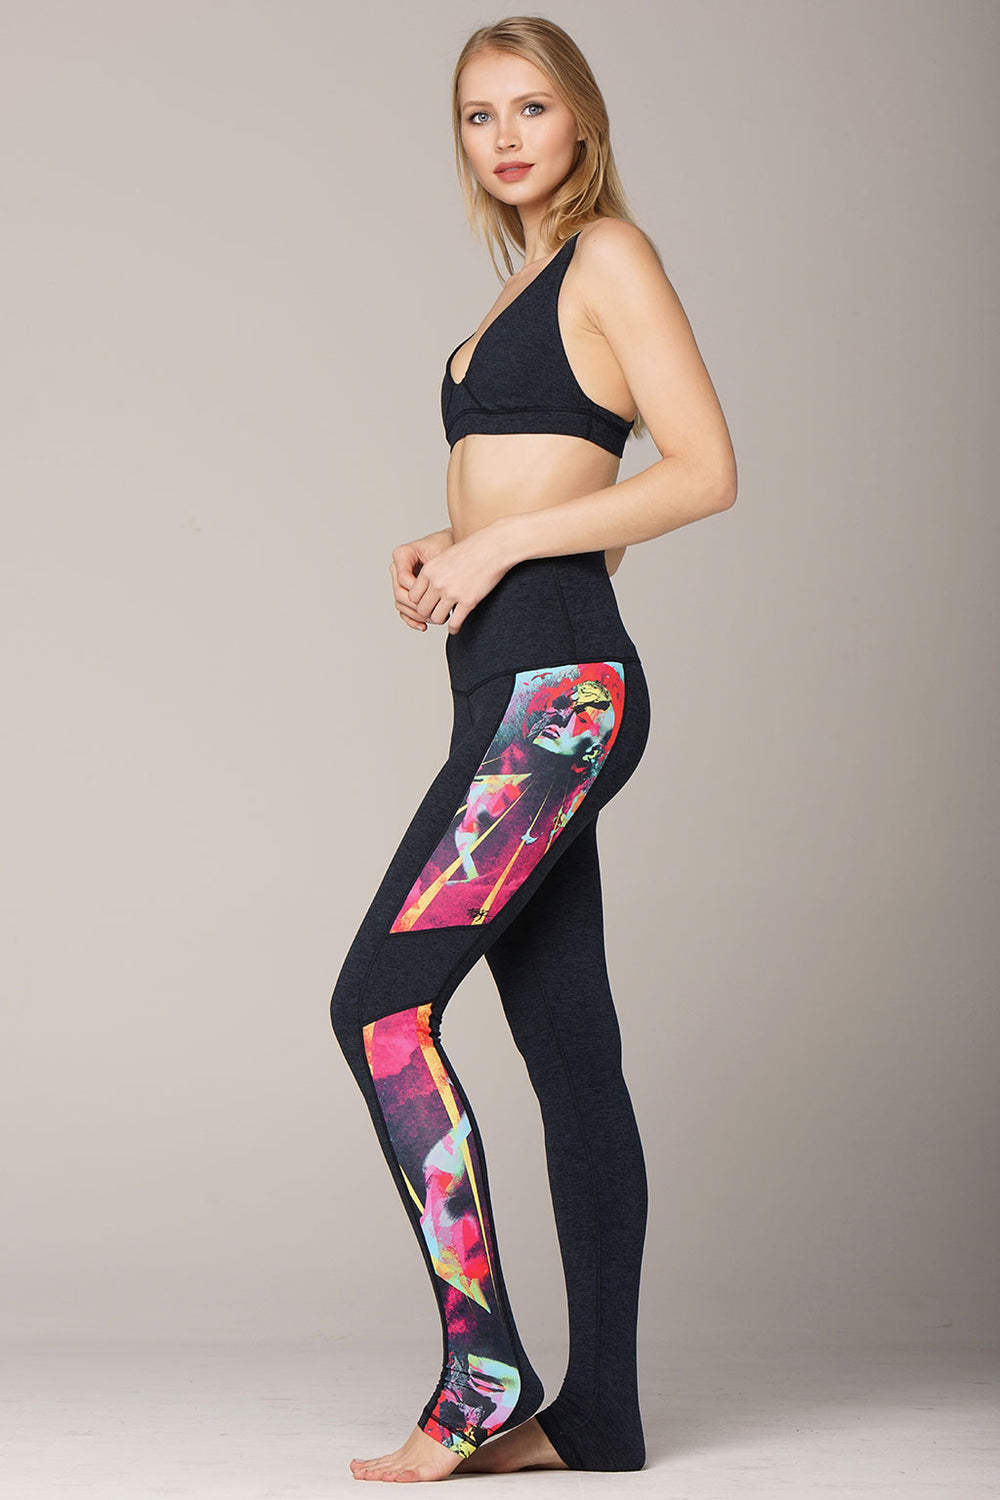 yoga Leggings by Yogavated Athletic Apparel Attainment Reflection Legging